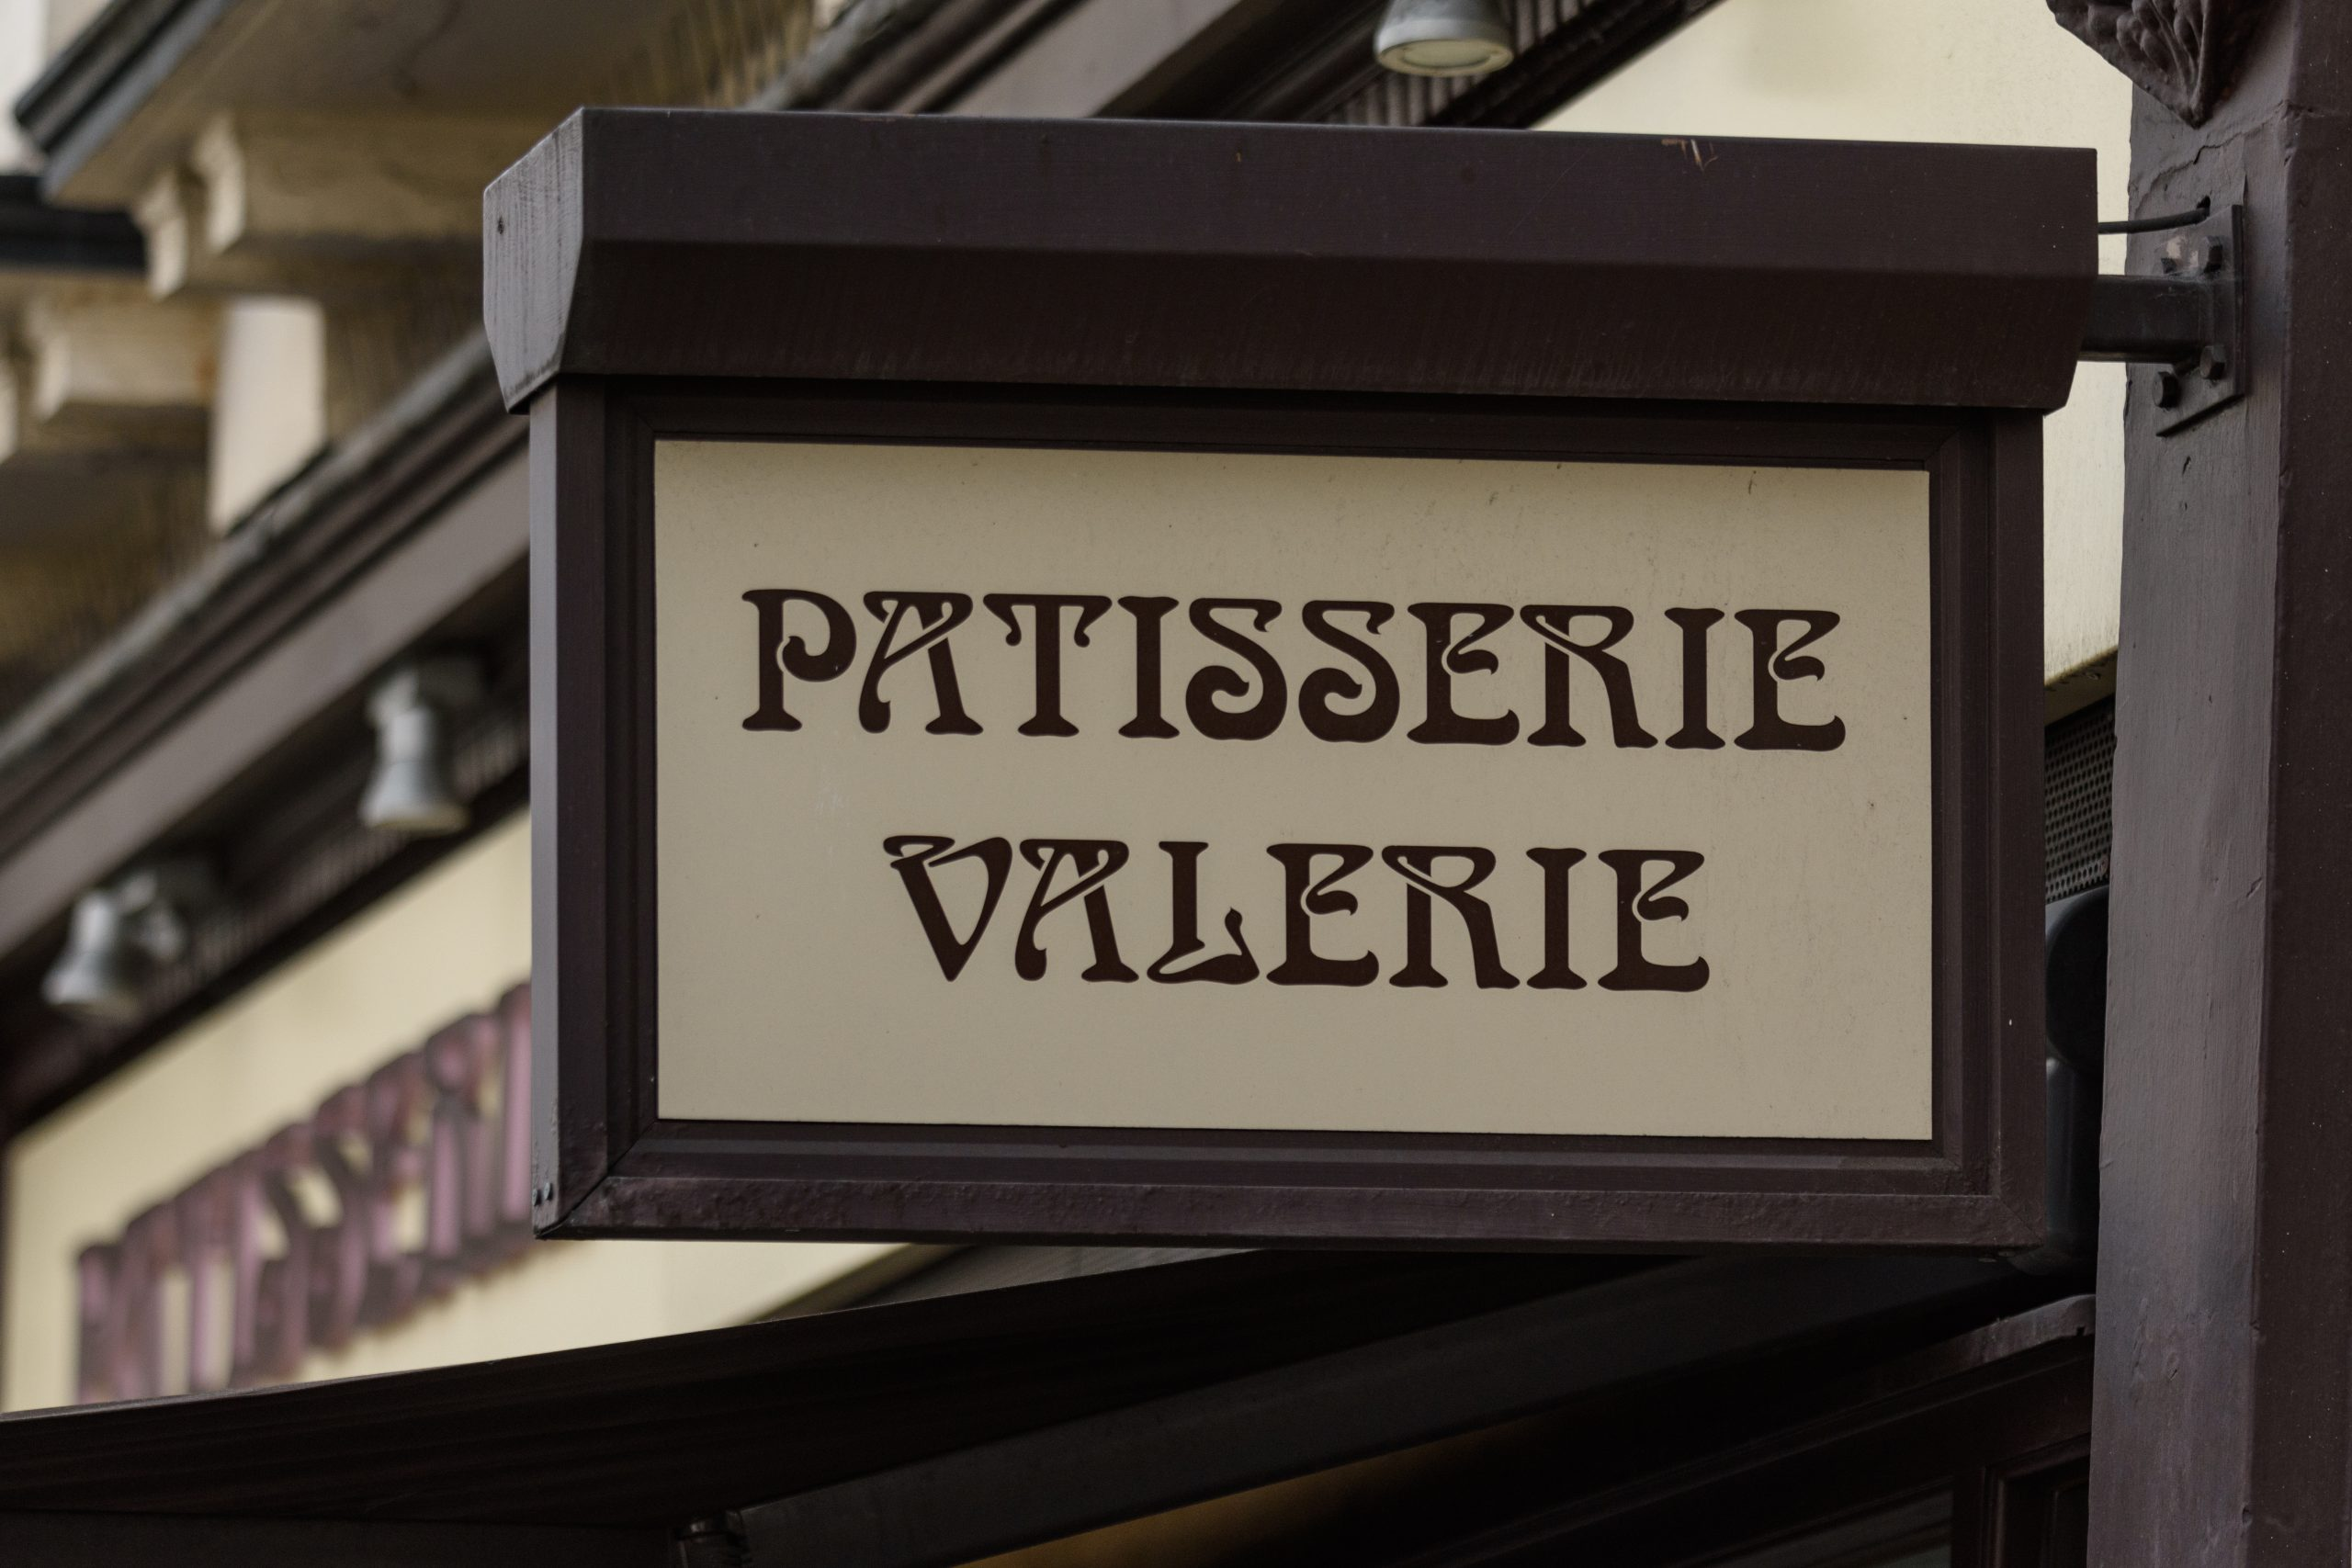 Patisserie Valerie confirms deal with Sainsbury's